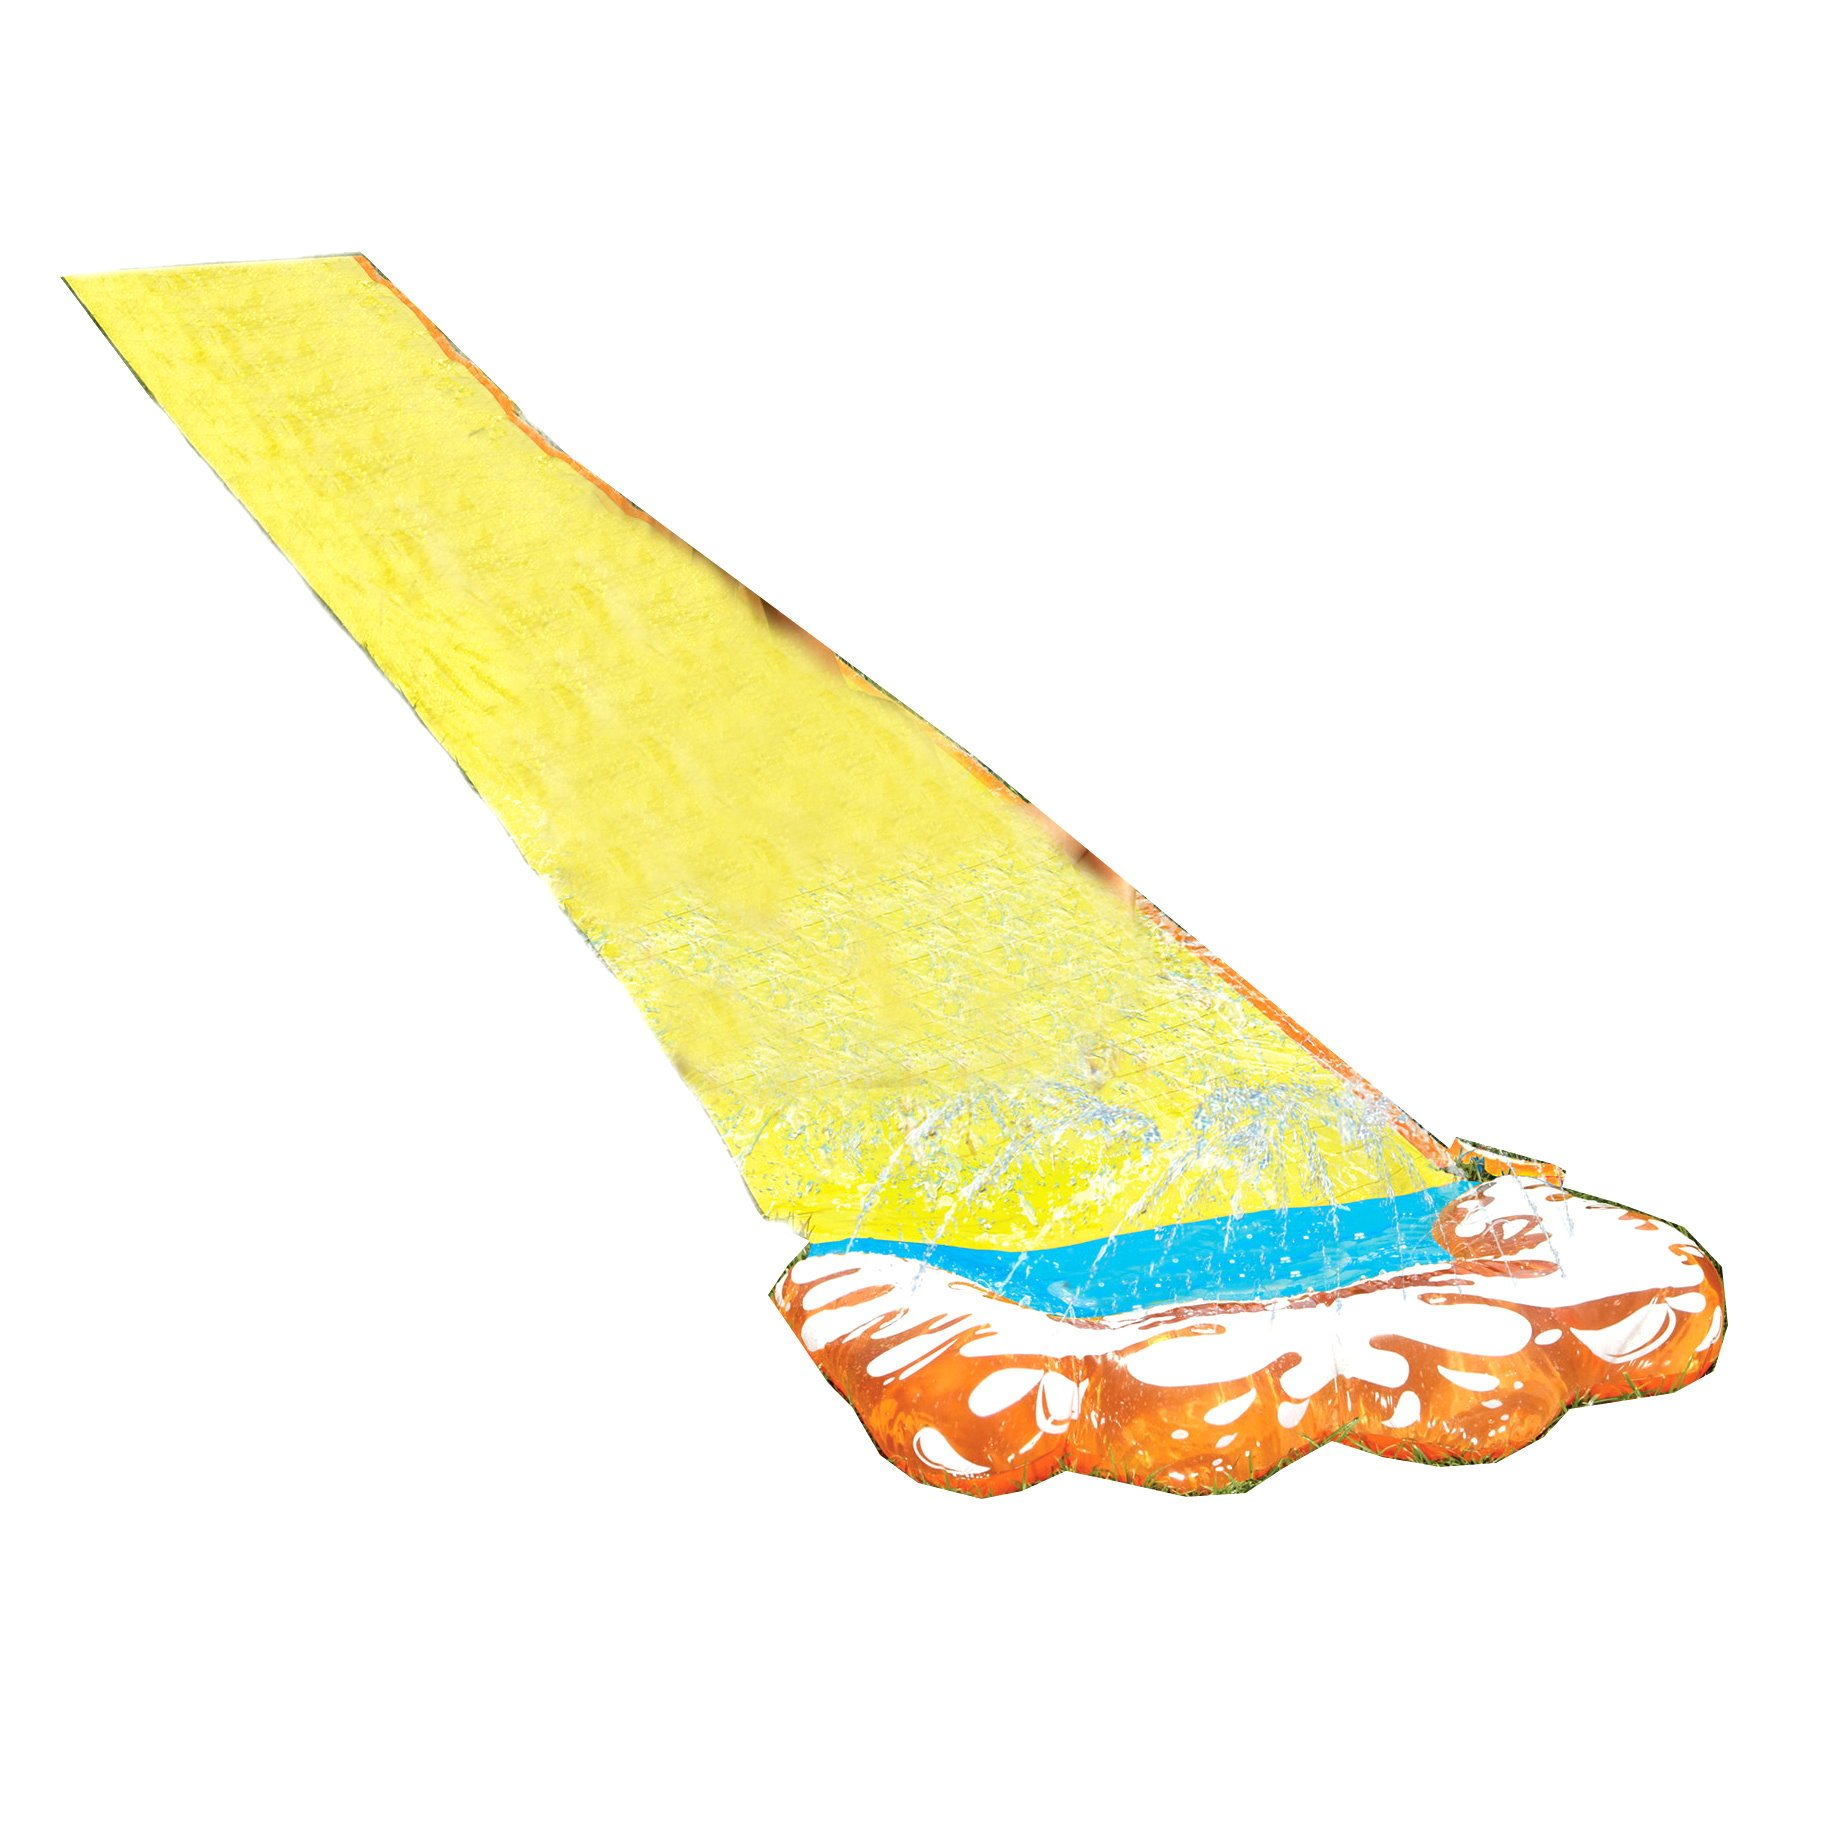 Inflatable Slip N Slide. This Big Sprinkler Hydroplane Kiddie Blow Up Above Ground Long Waterslide With Boogie Is Great For Kids & Children, Aqua Splash To Have Outdoor Water Fun With All Family.